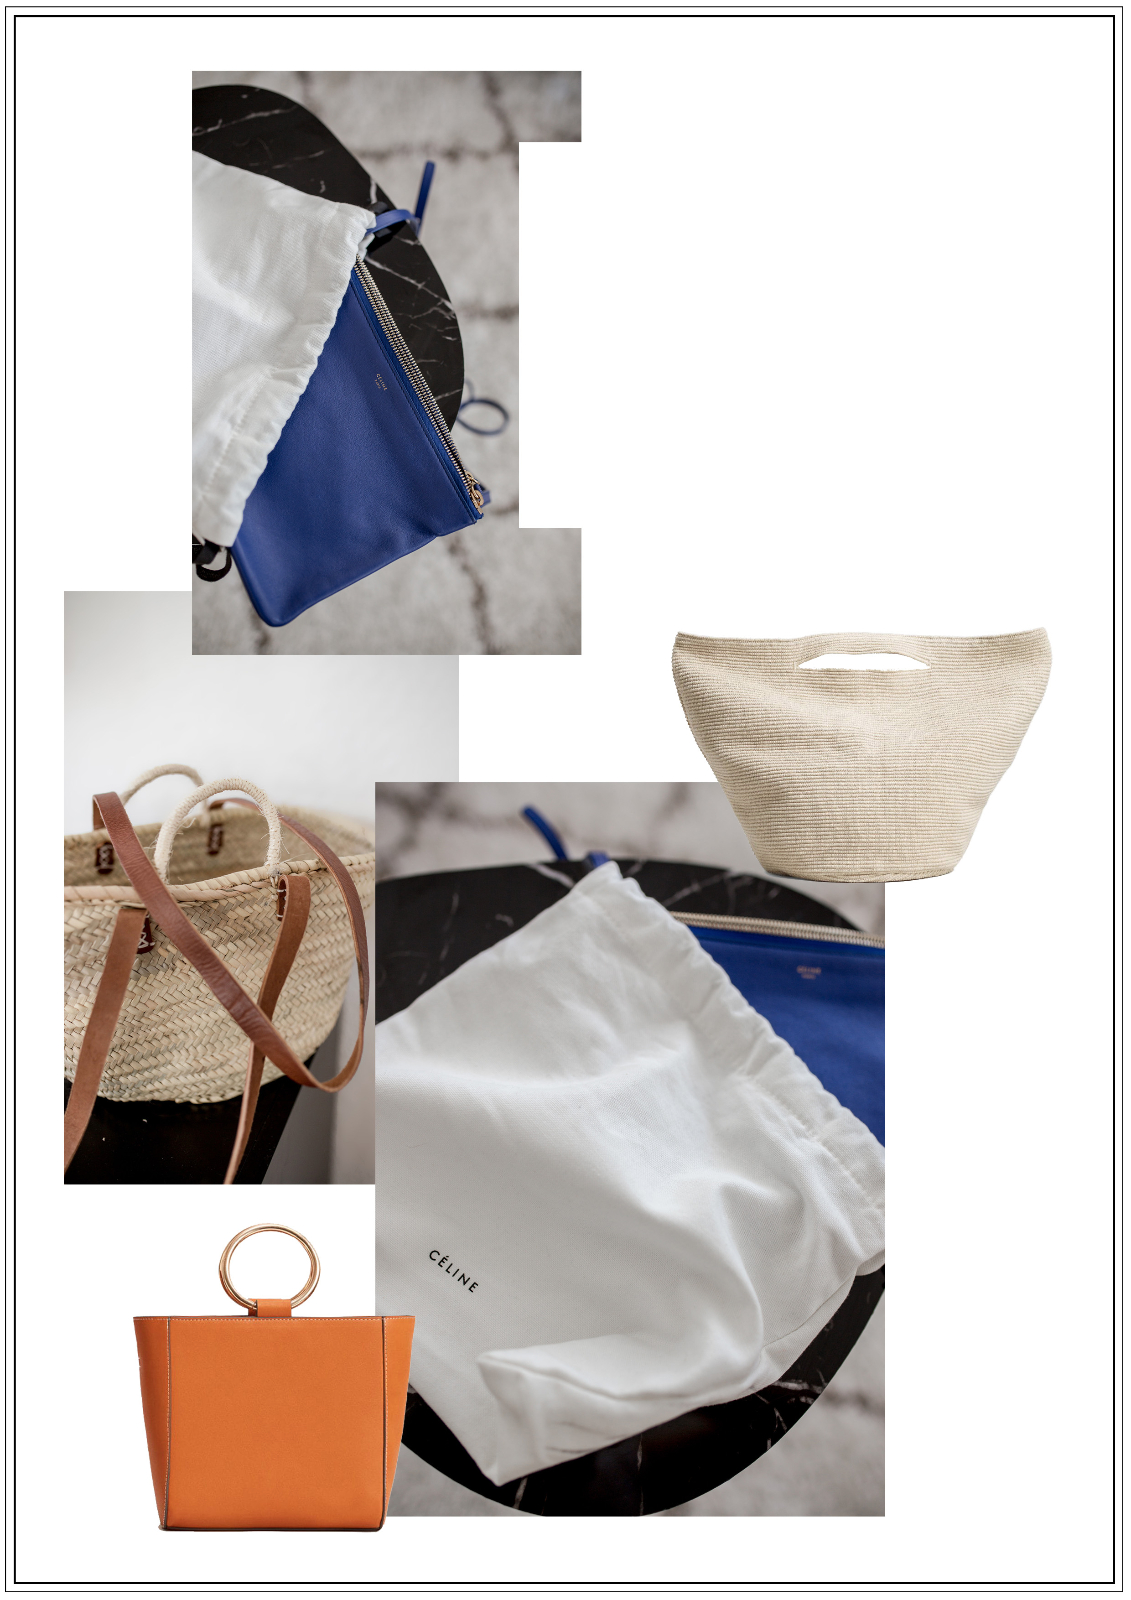 Summer_Bags_Berlin_The-Limits-of-Control-Fashion-Fashionblogger-Blogger-Berlin-Deutschland-Modeblog-Modeblogger